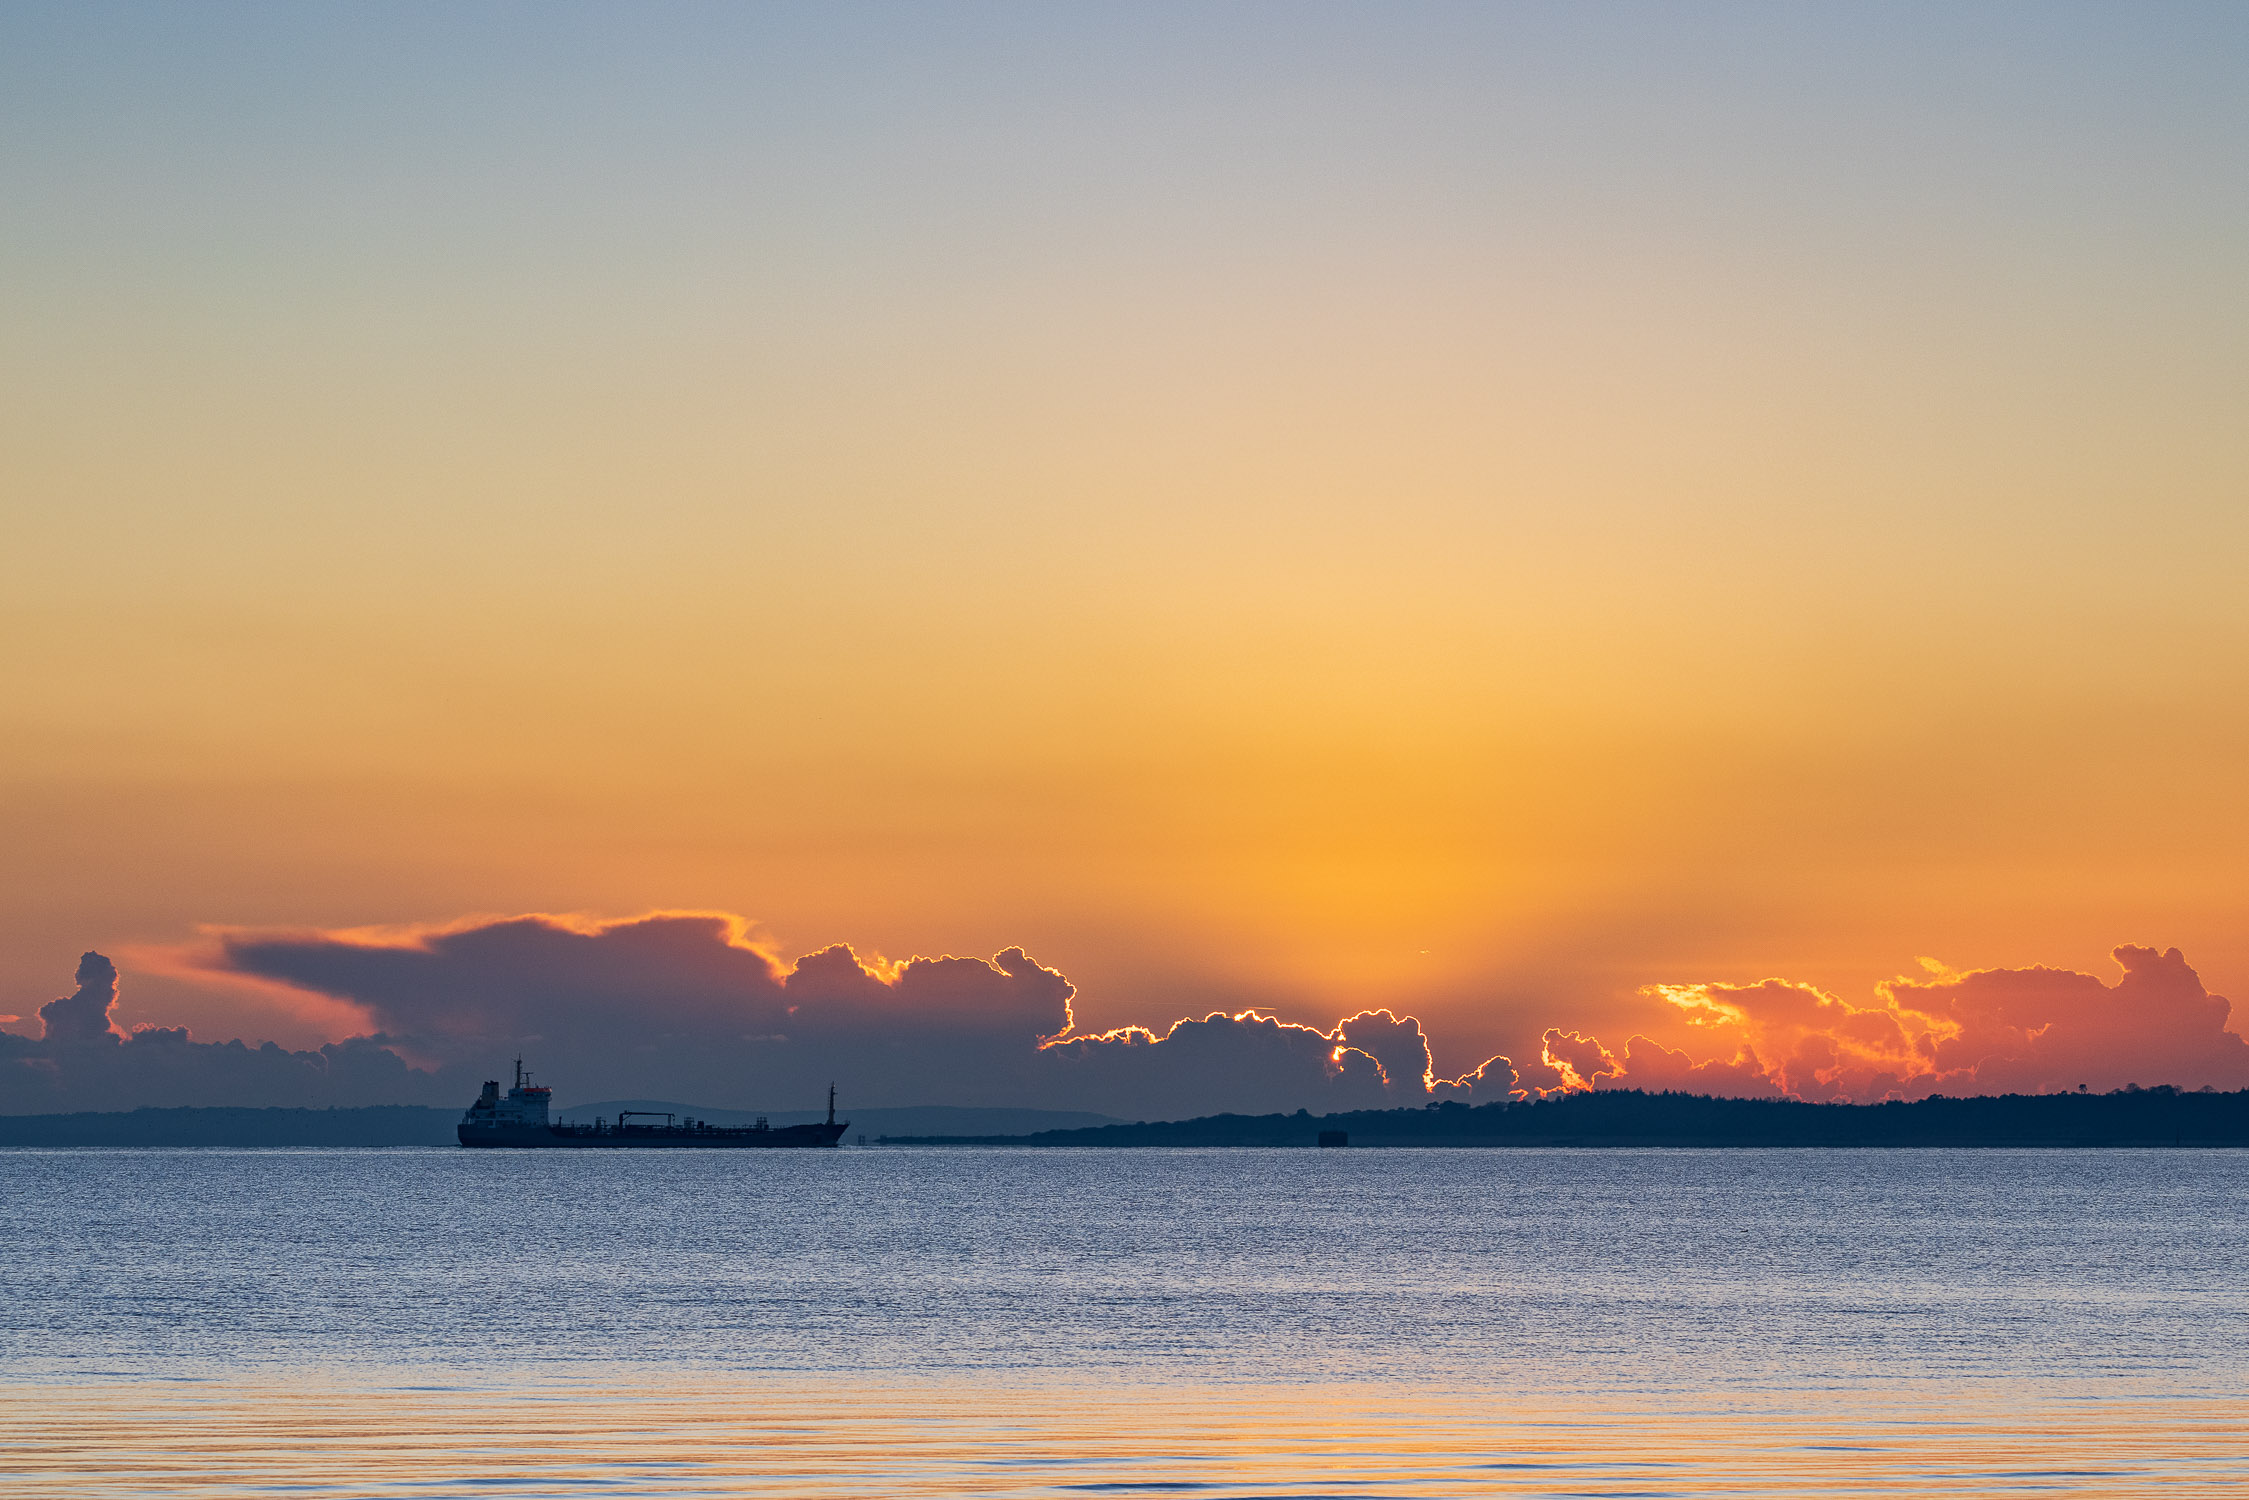 Sunset and oil tanker